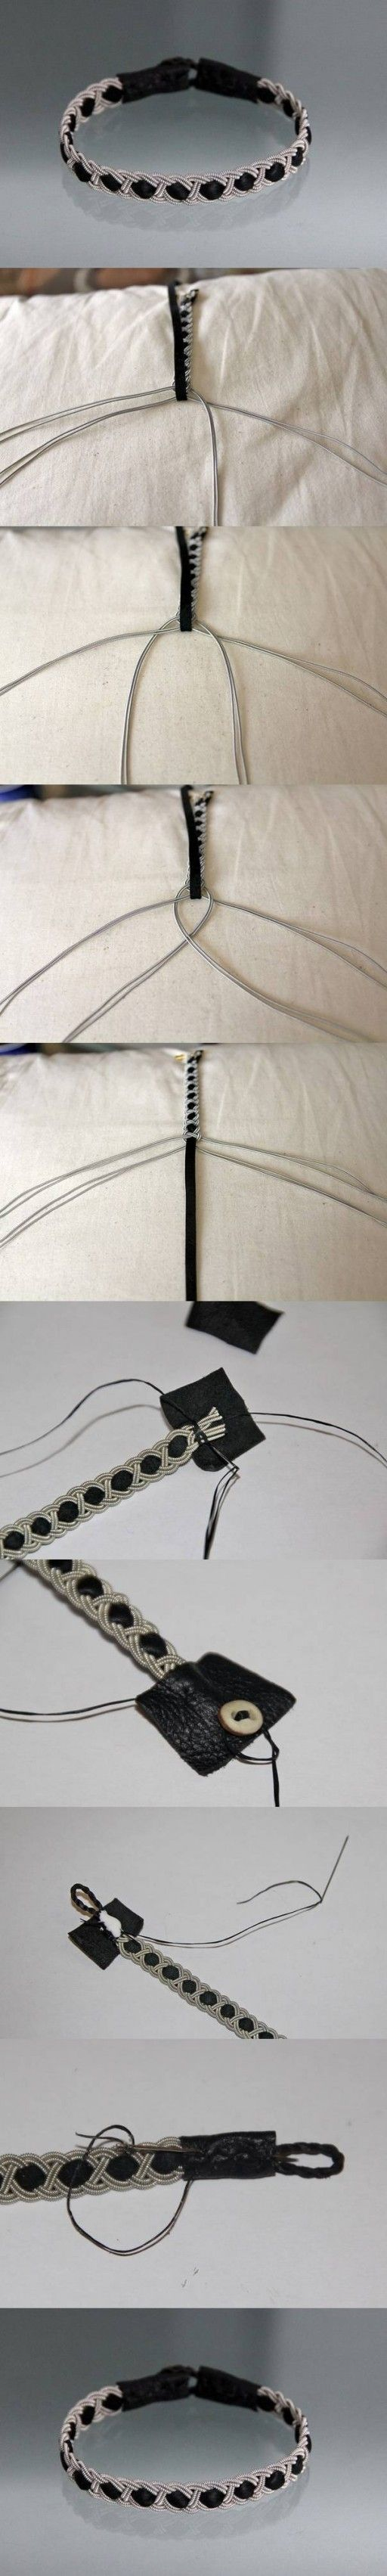 Do It Yourself Jewelry: How To Make Cute Rope Wristband DIY Tutorial Instructions